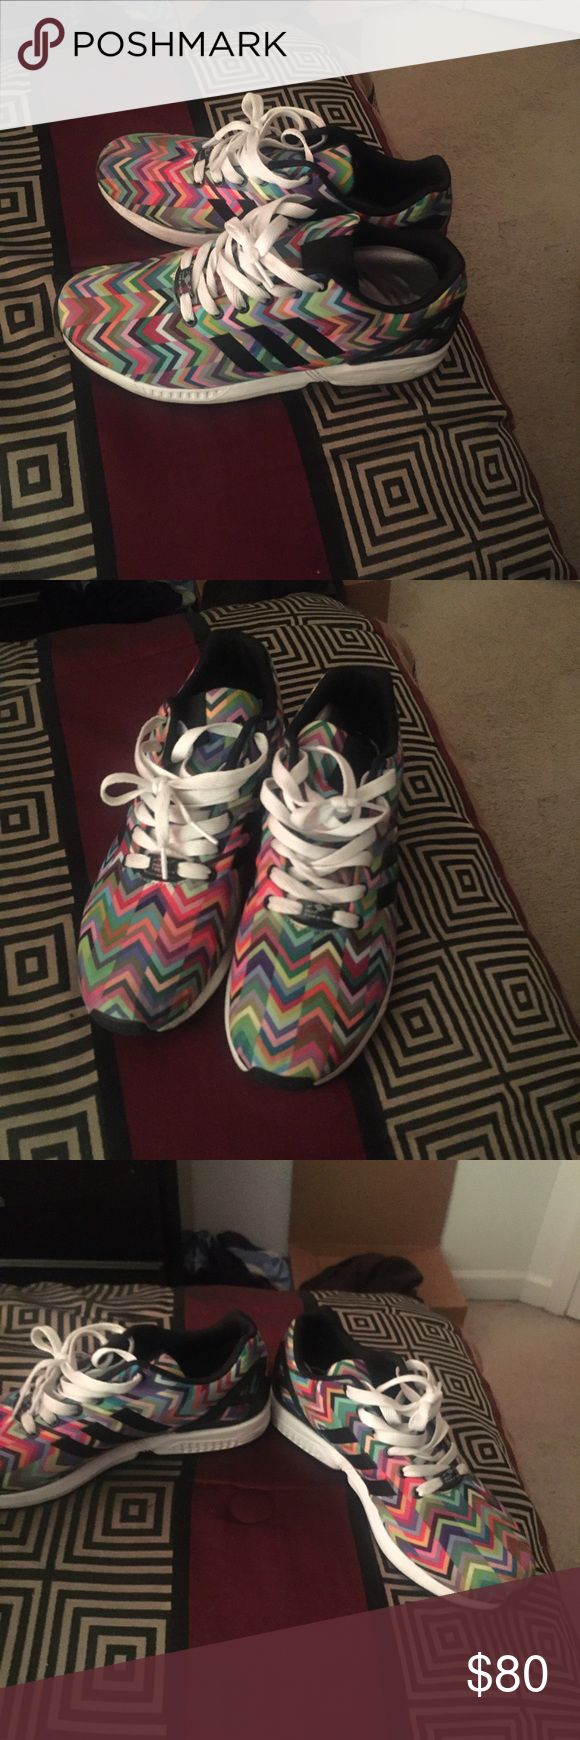 Zx Flux Adidas. Just looking to get rid of a lot my shoes. Comes with foam cushion soles. Adidas Shoes Athletic Shoes